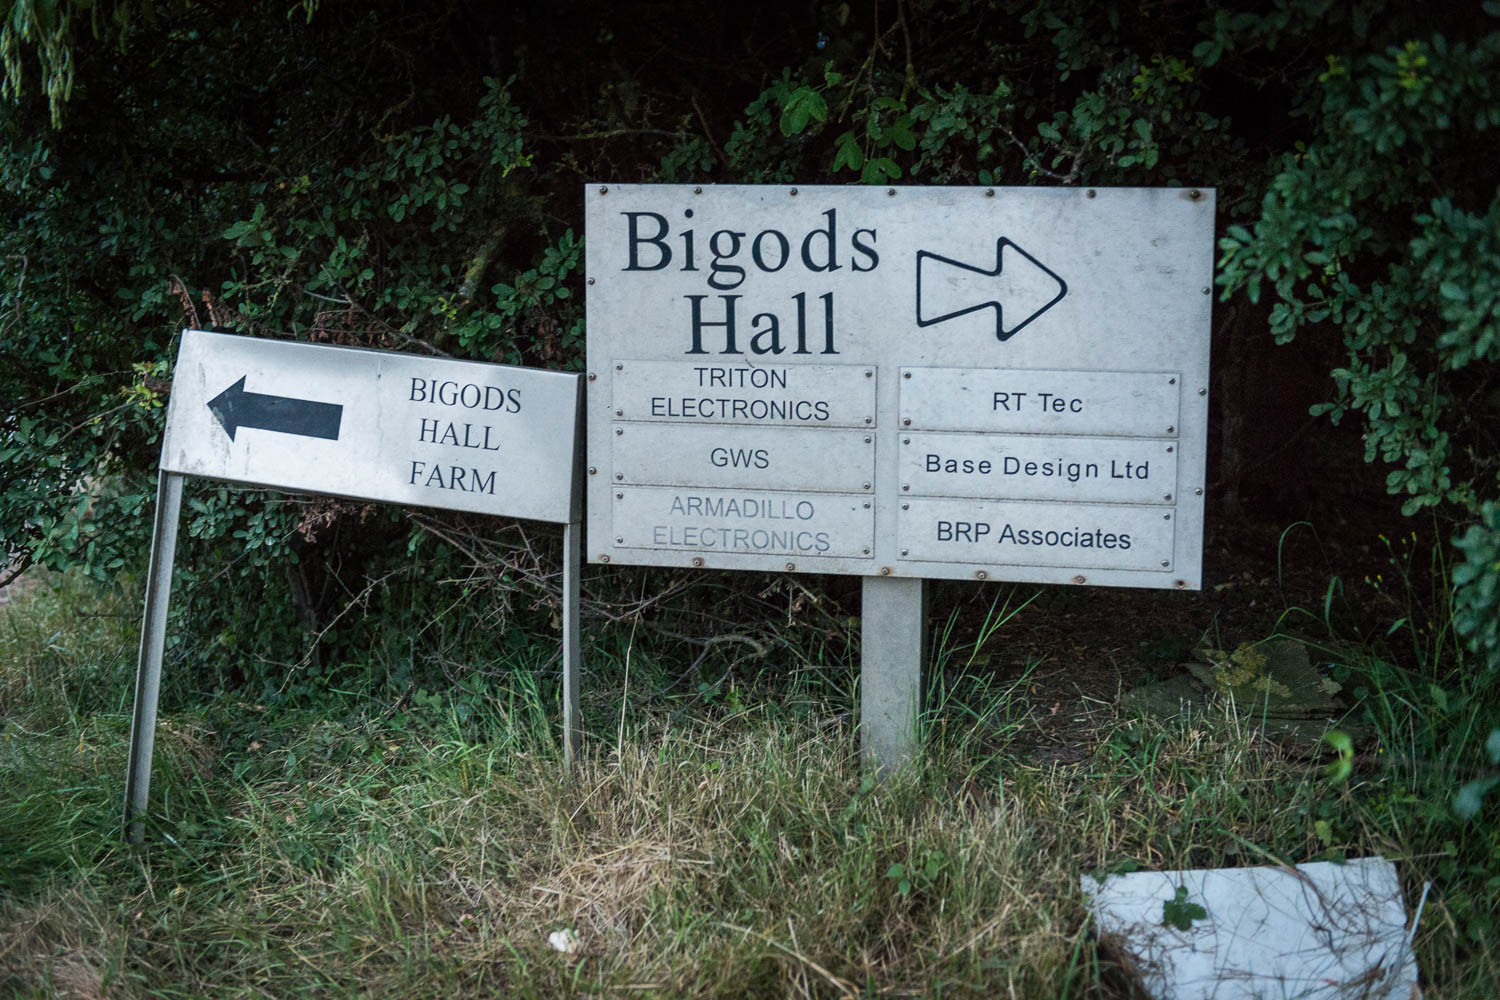 Bigods Hall, this way